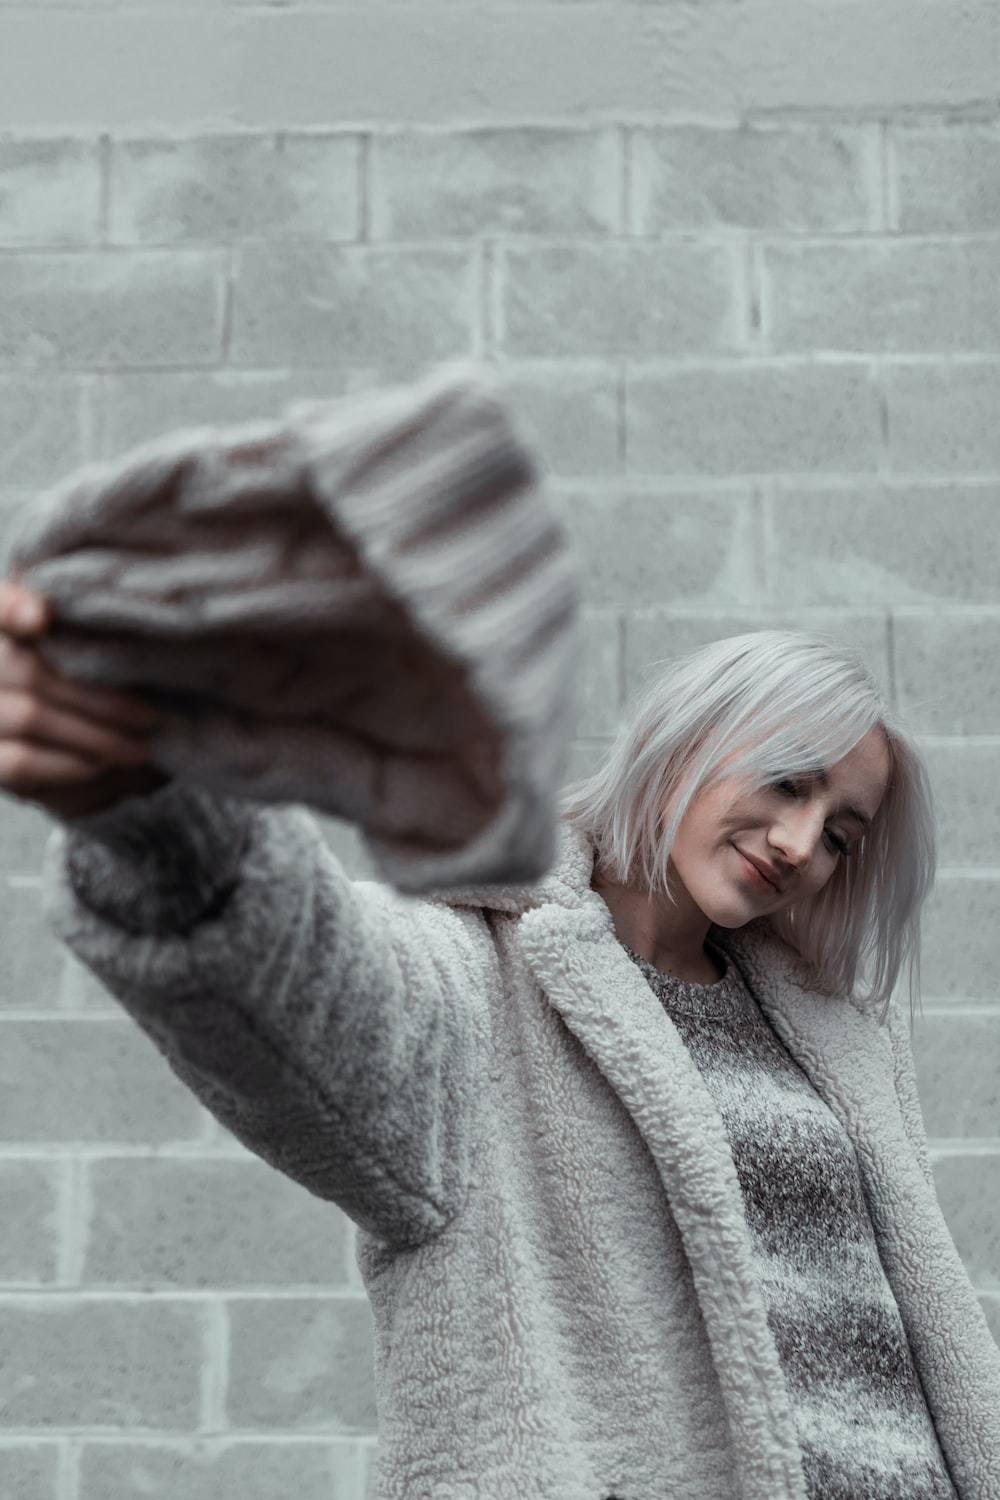 woman in gray sweater covering face with hands